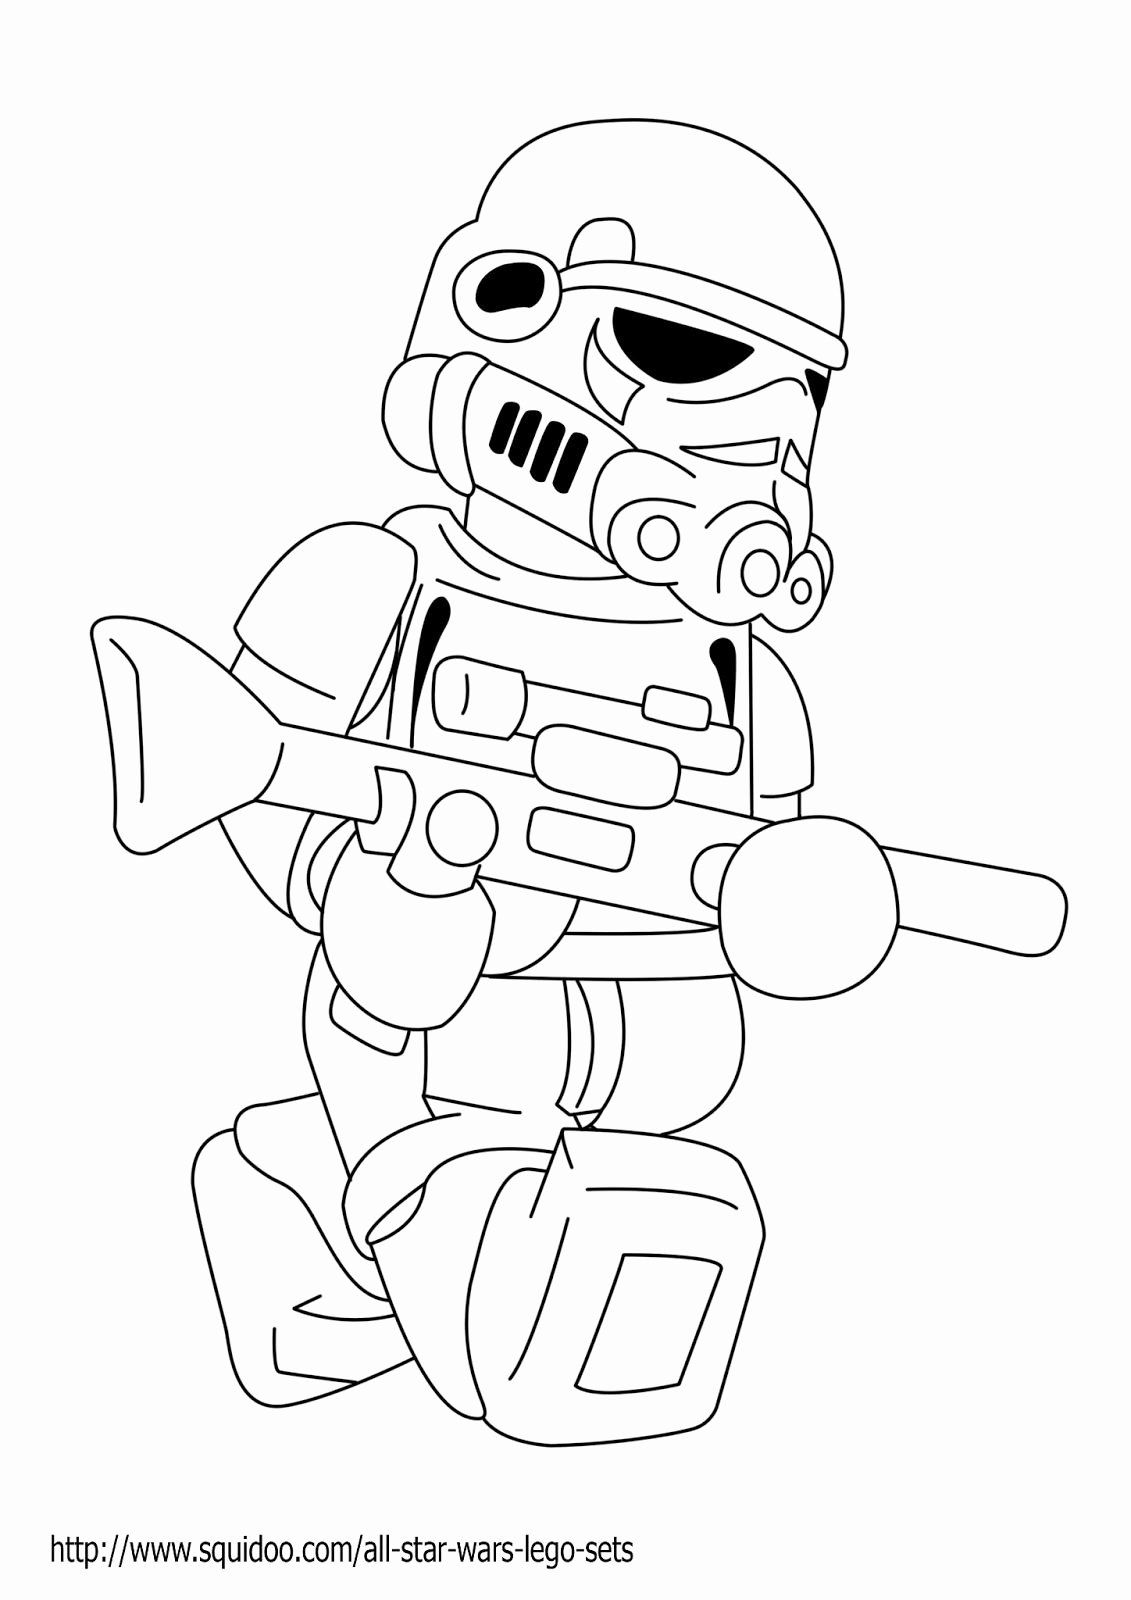 Darth Vader Lego Coloring Pages Di 2020 Kartun Gambar Chewbacca